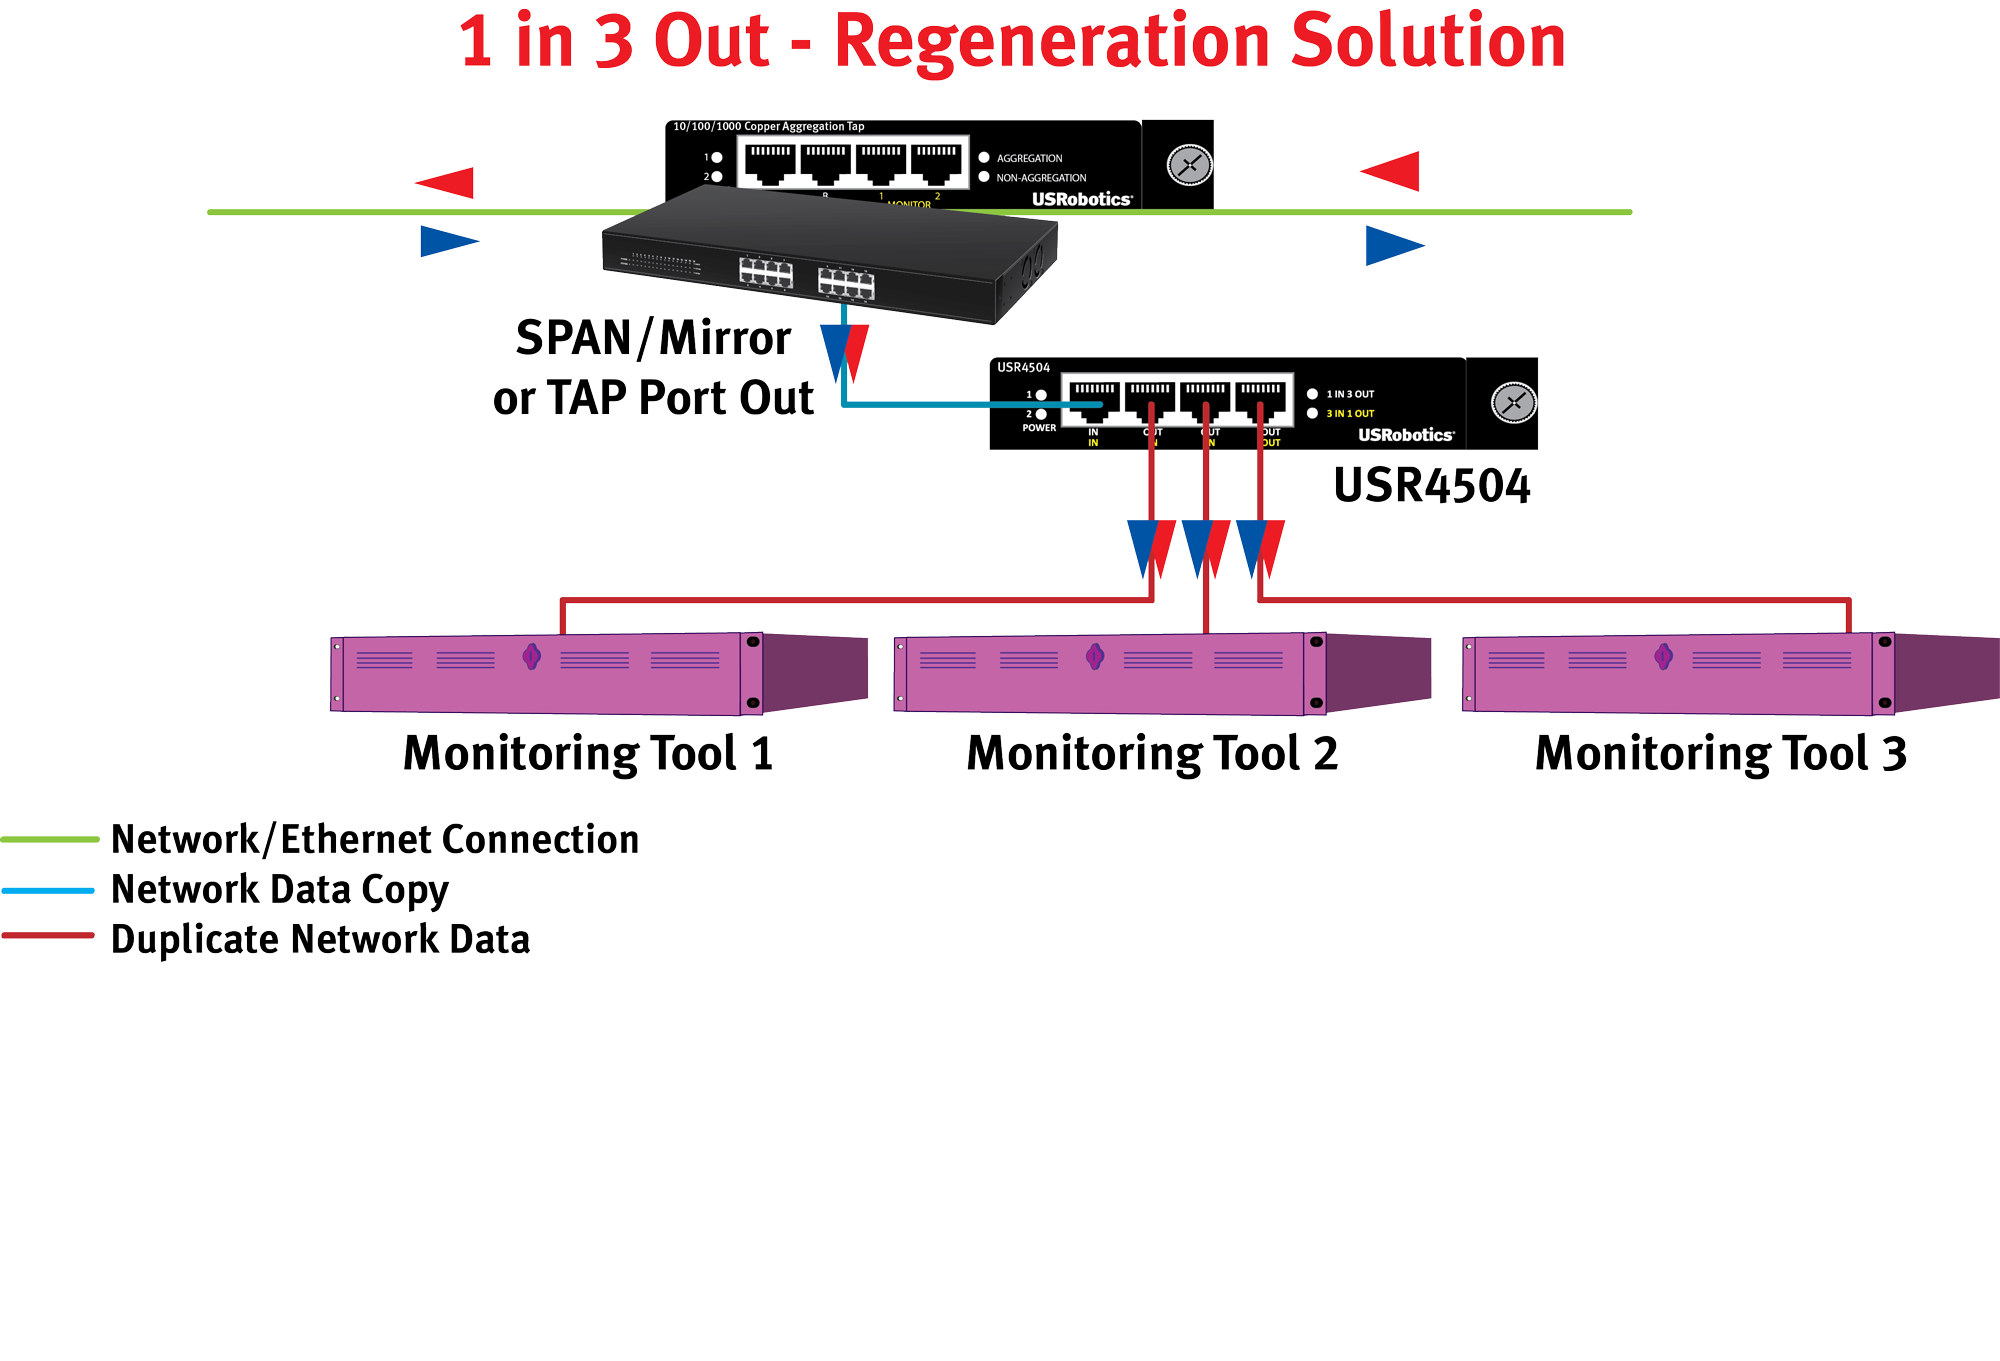 USR4504 Regeneration Application Diagram